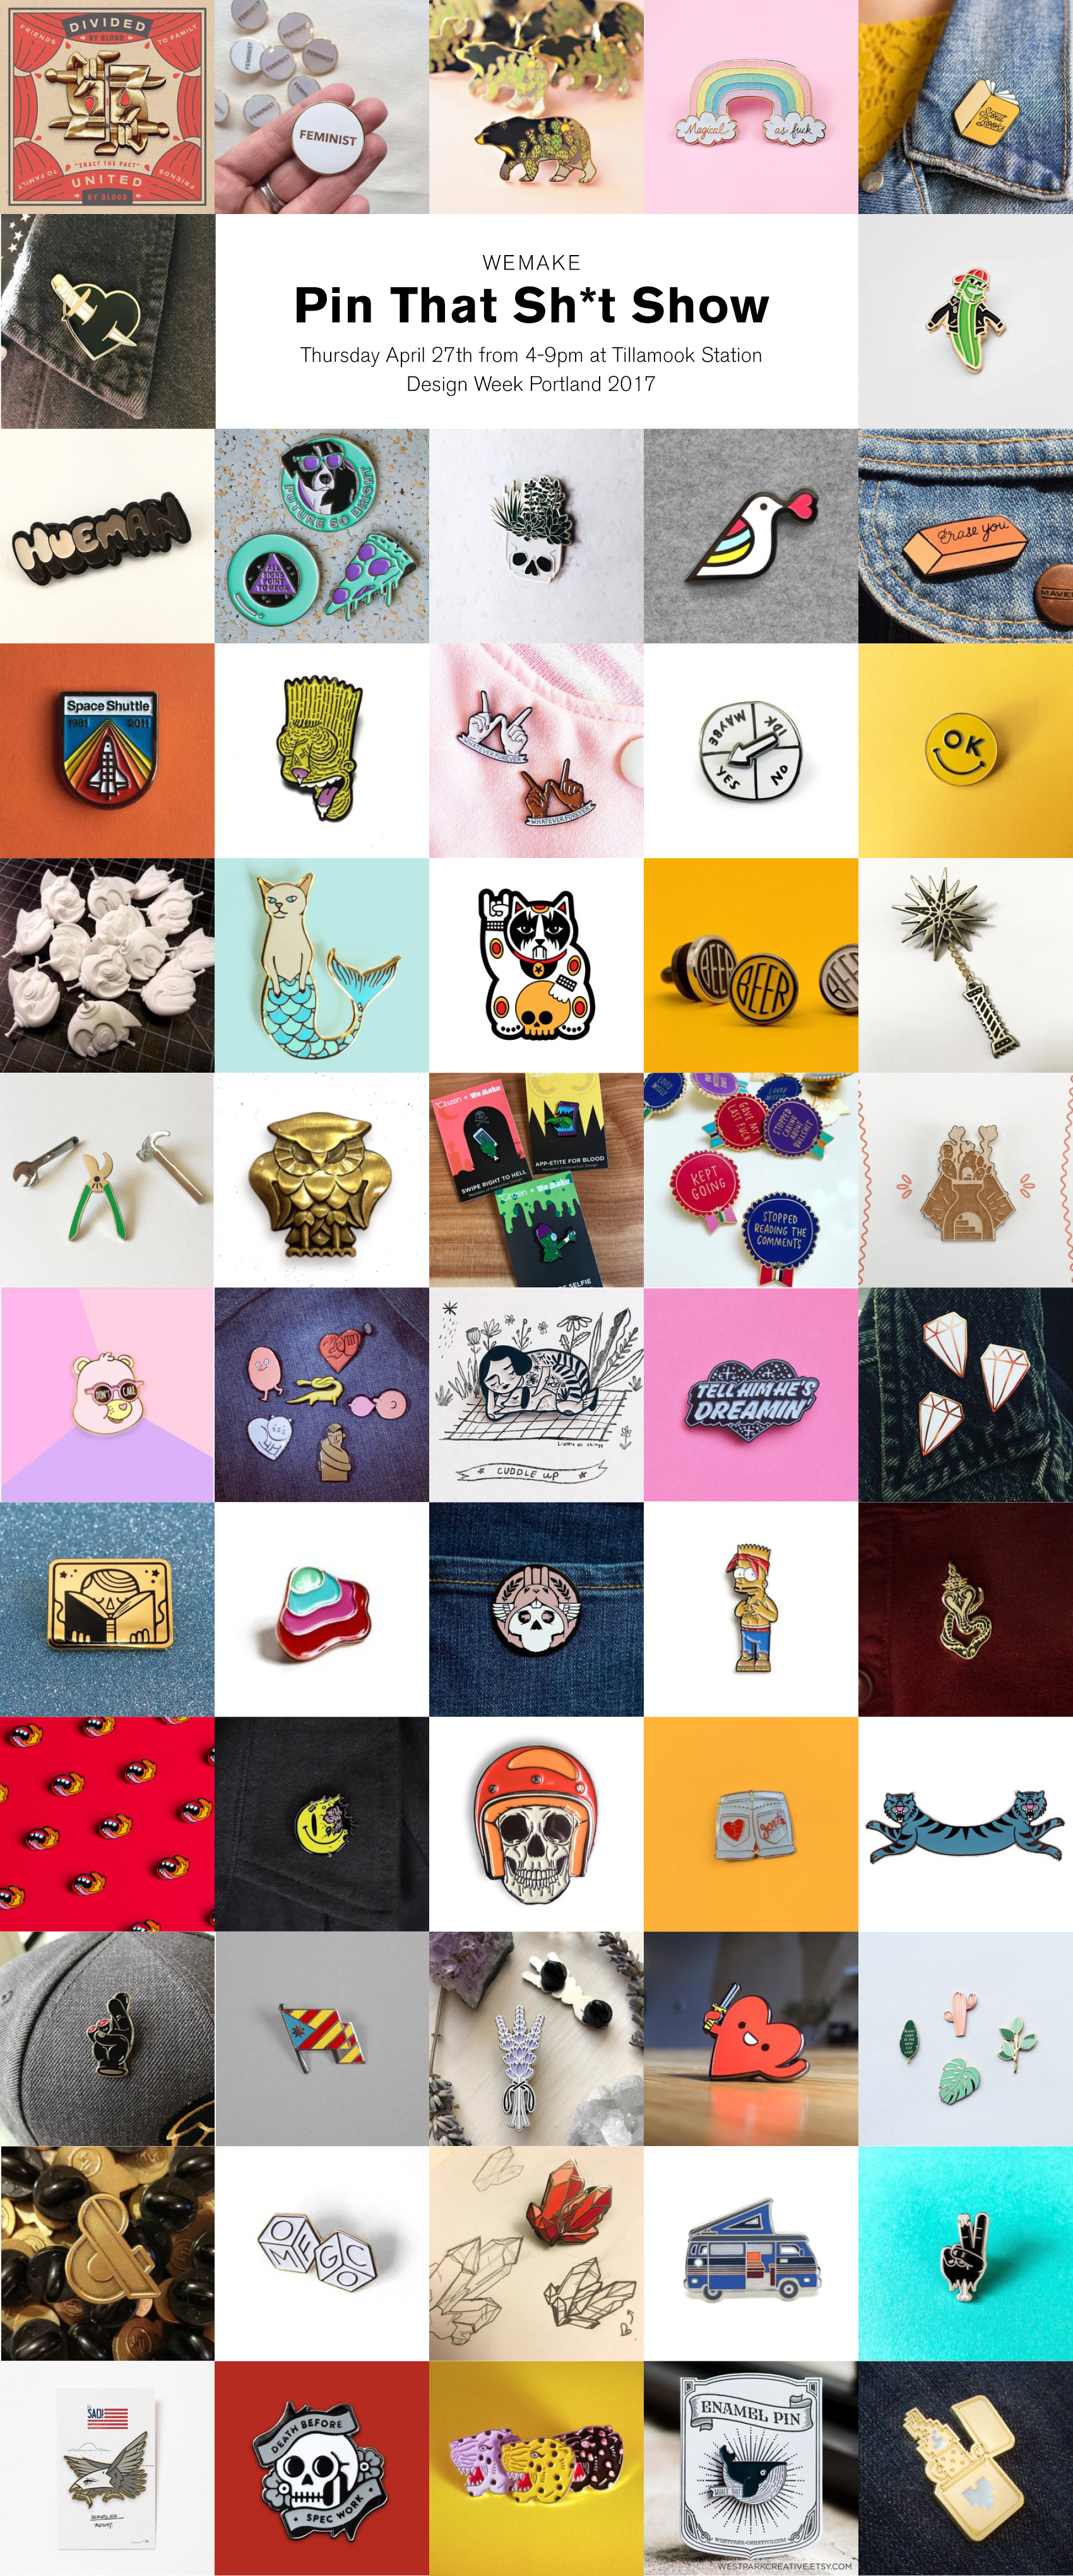 participant pins of Pin That Sh*t art show